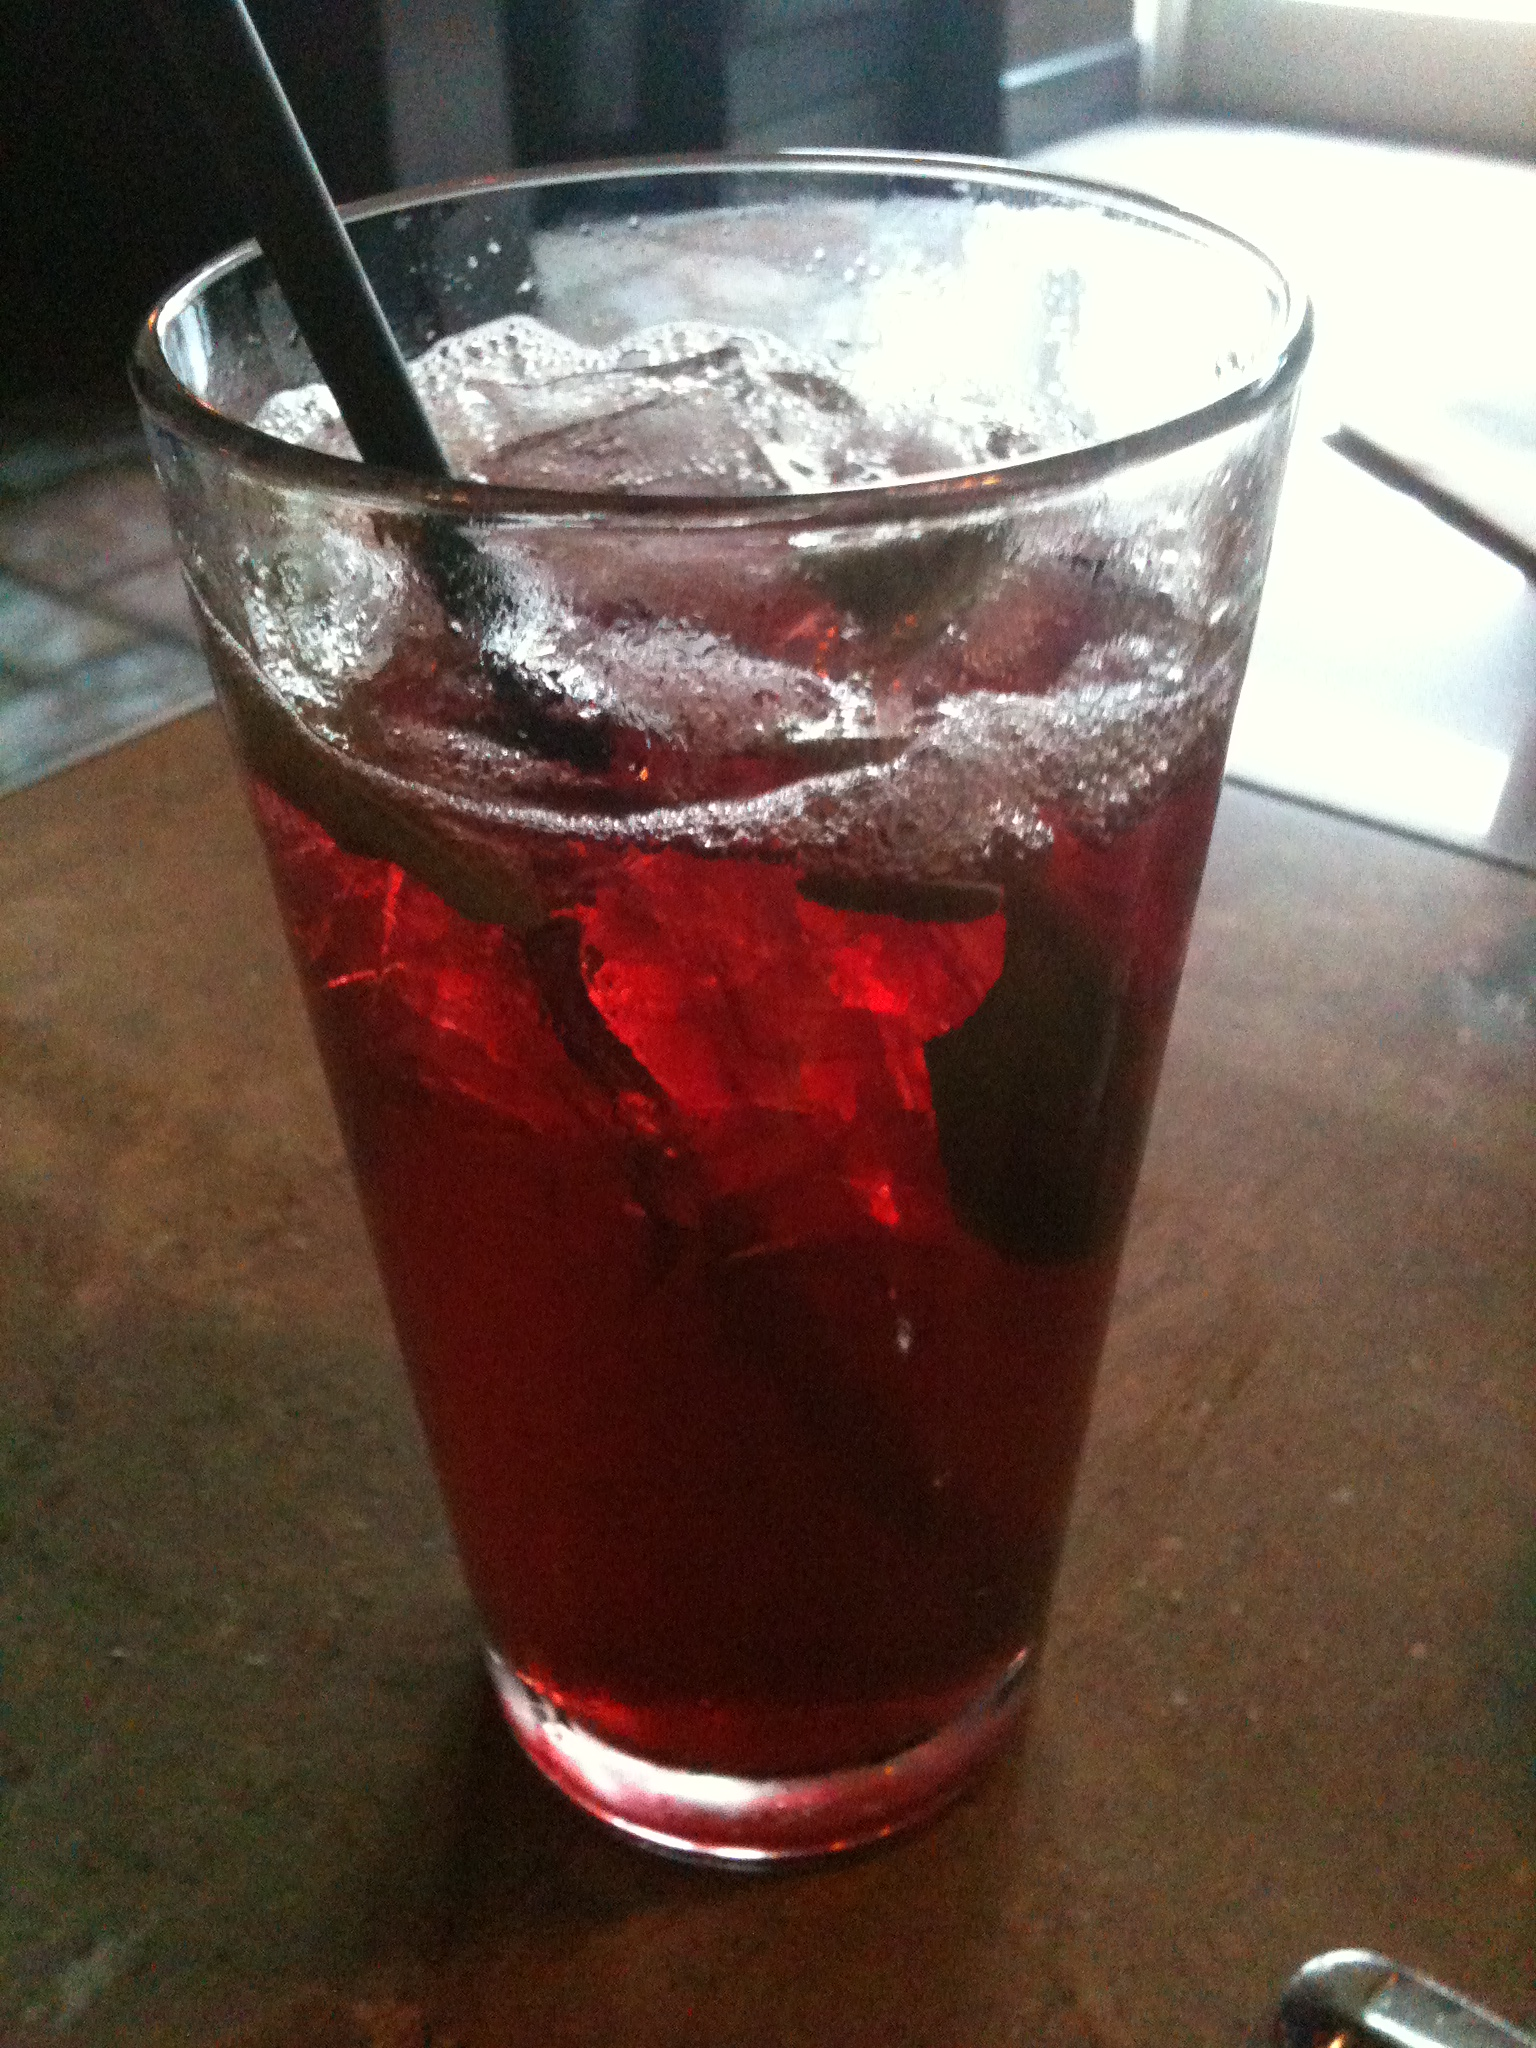 ... blackberry sage lemonade blackberry sage lemonade since i haven t been